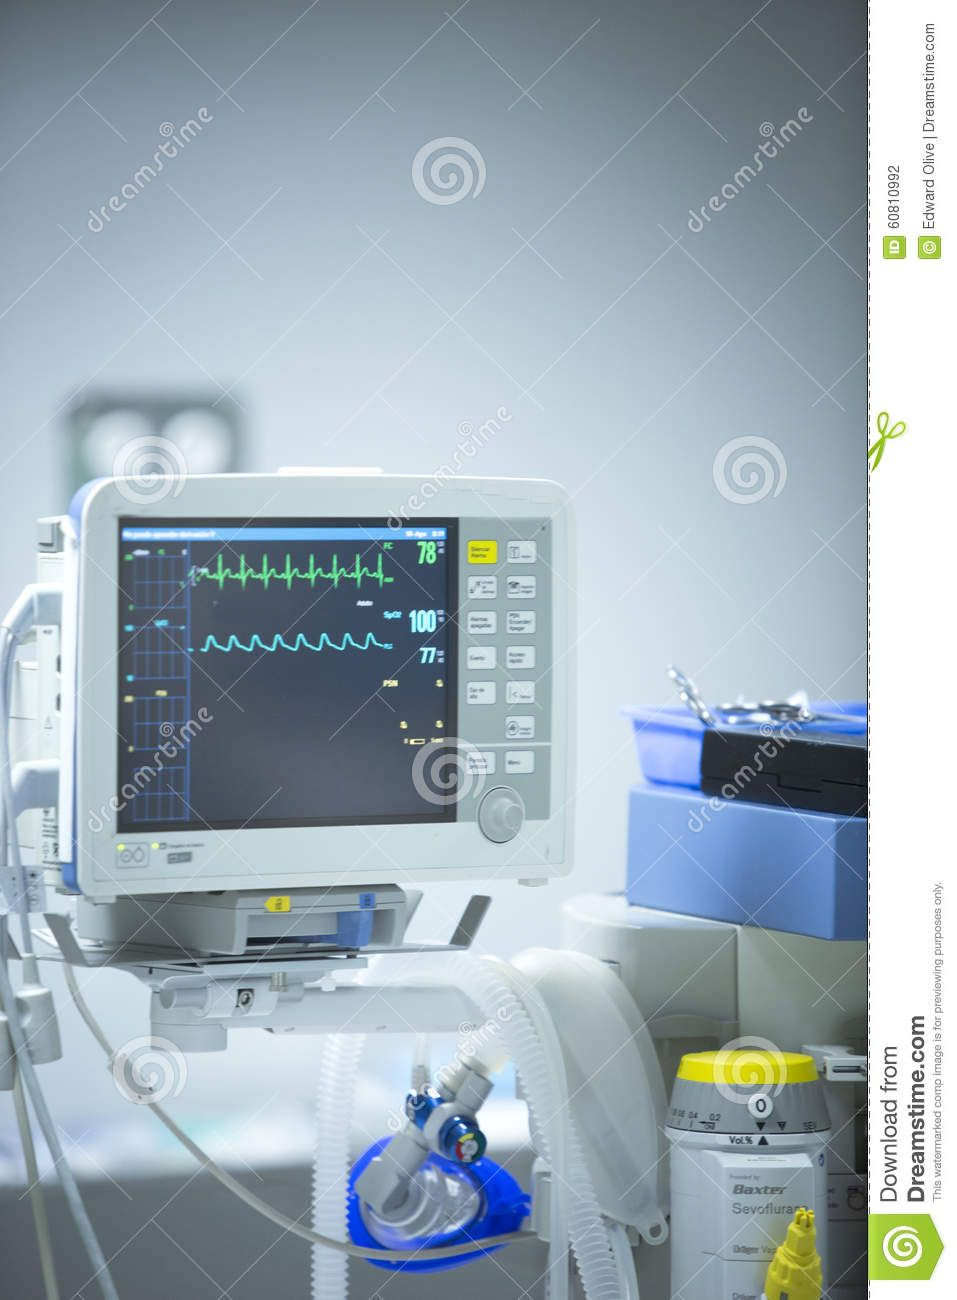 Endoscopy Room Design: Surgery Hospital Operating Room Heart Rate Monitor Stock